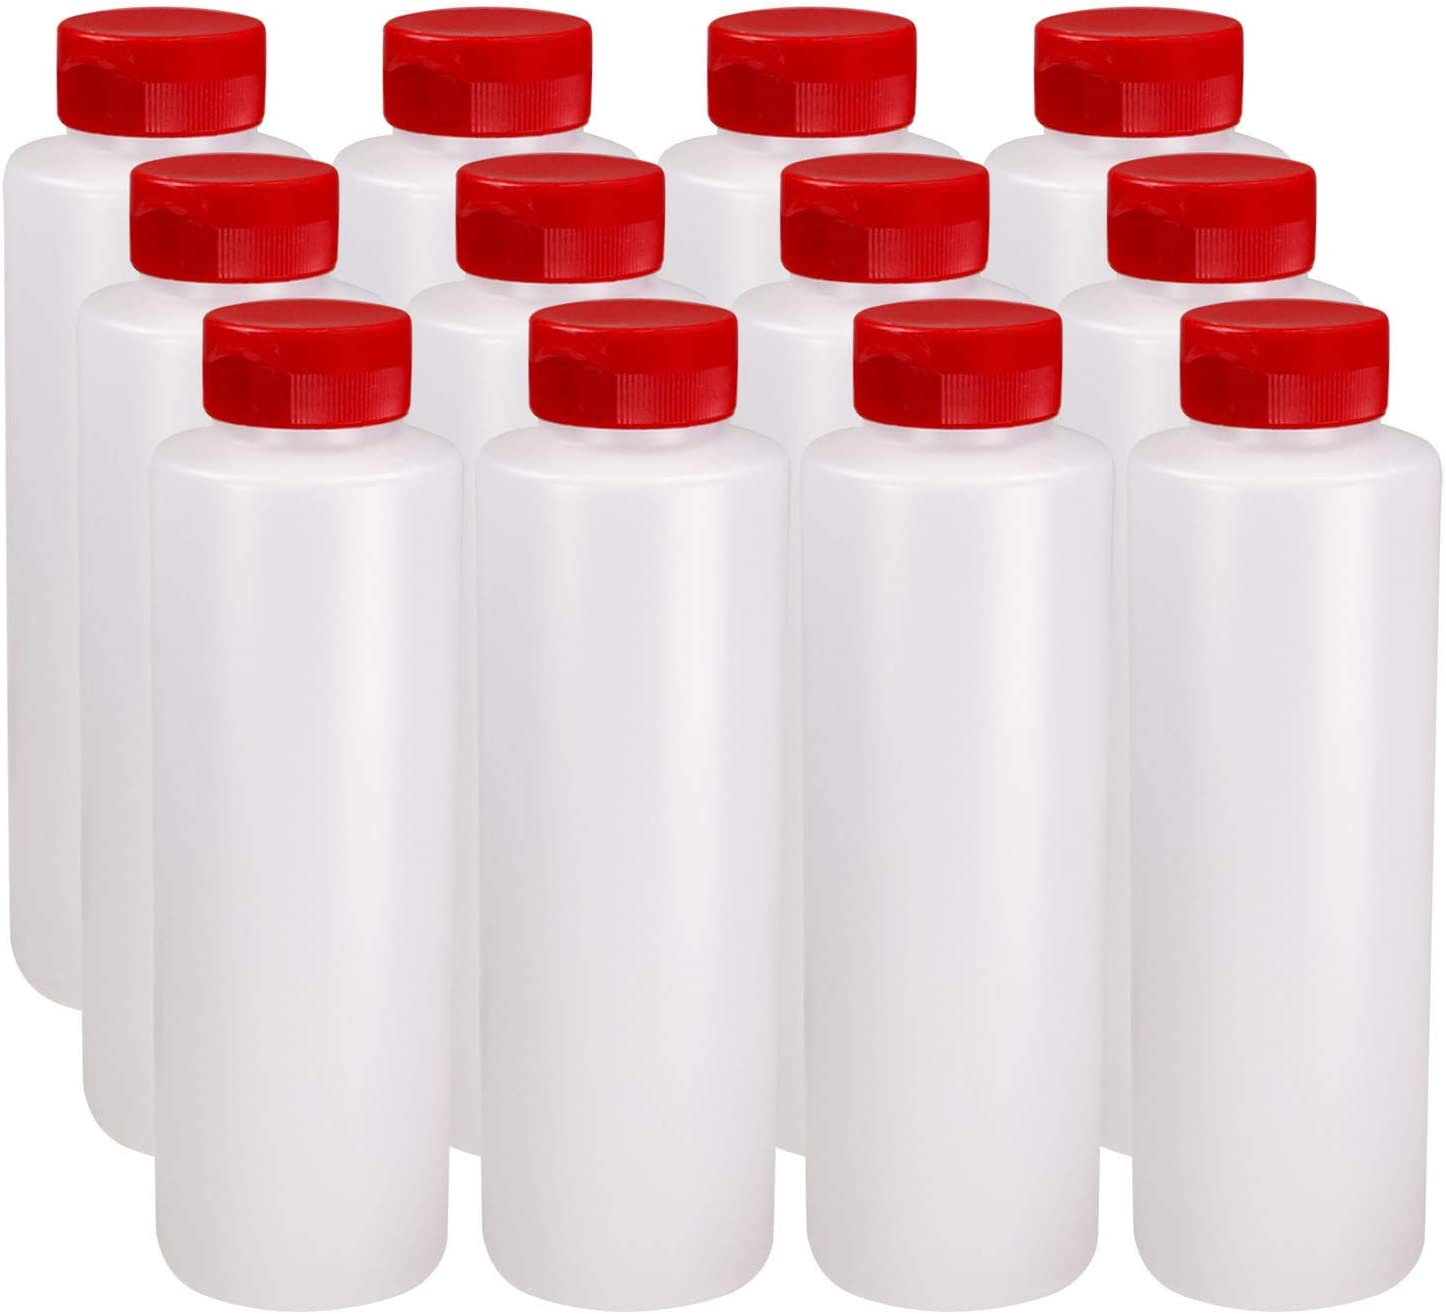 Pinnacle Mercantile Condiment Squeeze Bottles with Flip Top Hinged Red Cap 16 oz Set of 12 (Perfect for Condiments, Sauces, Dressings, BBQ, Ketchup) Made USA